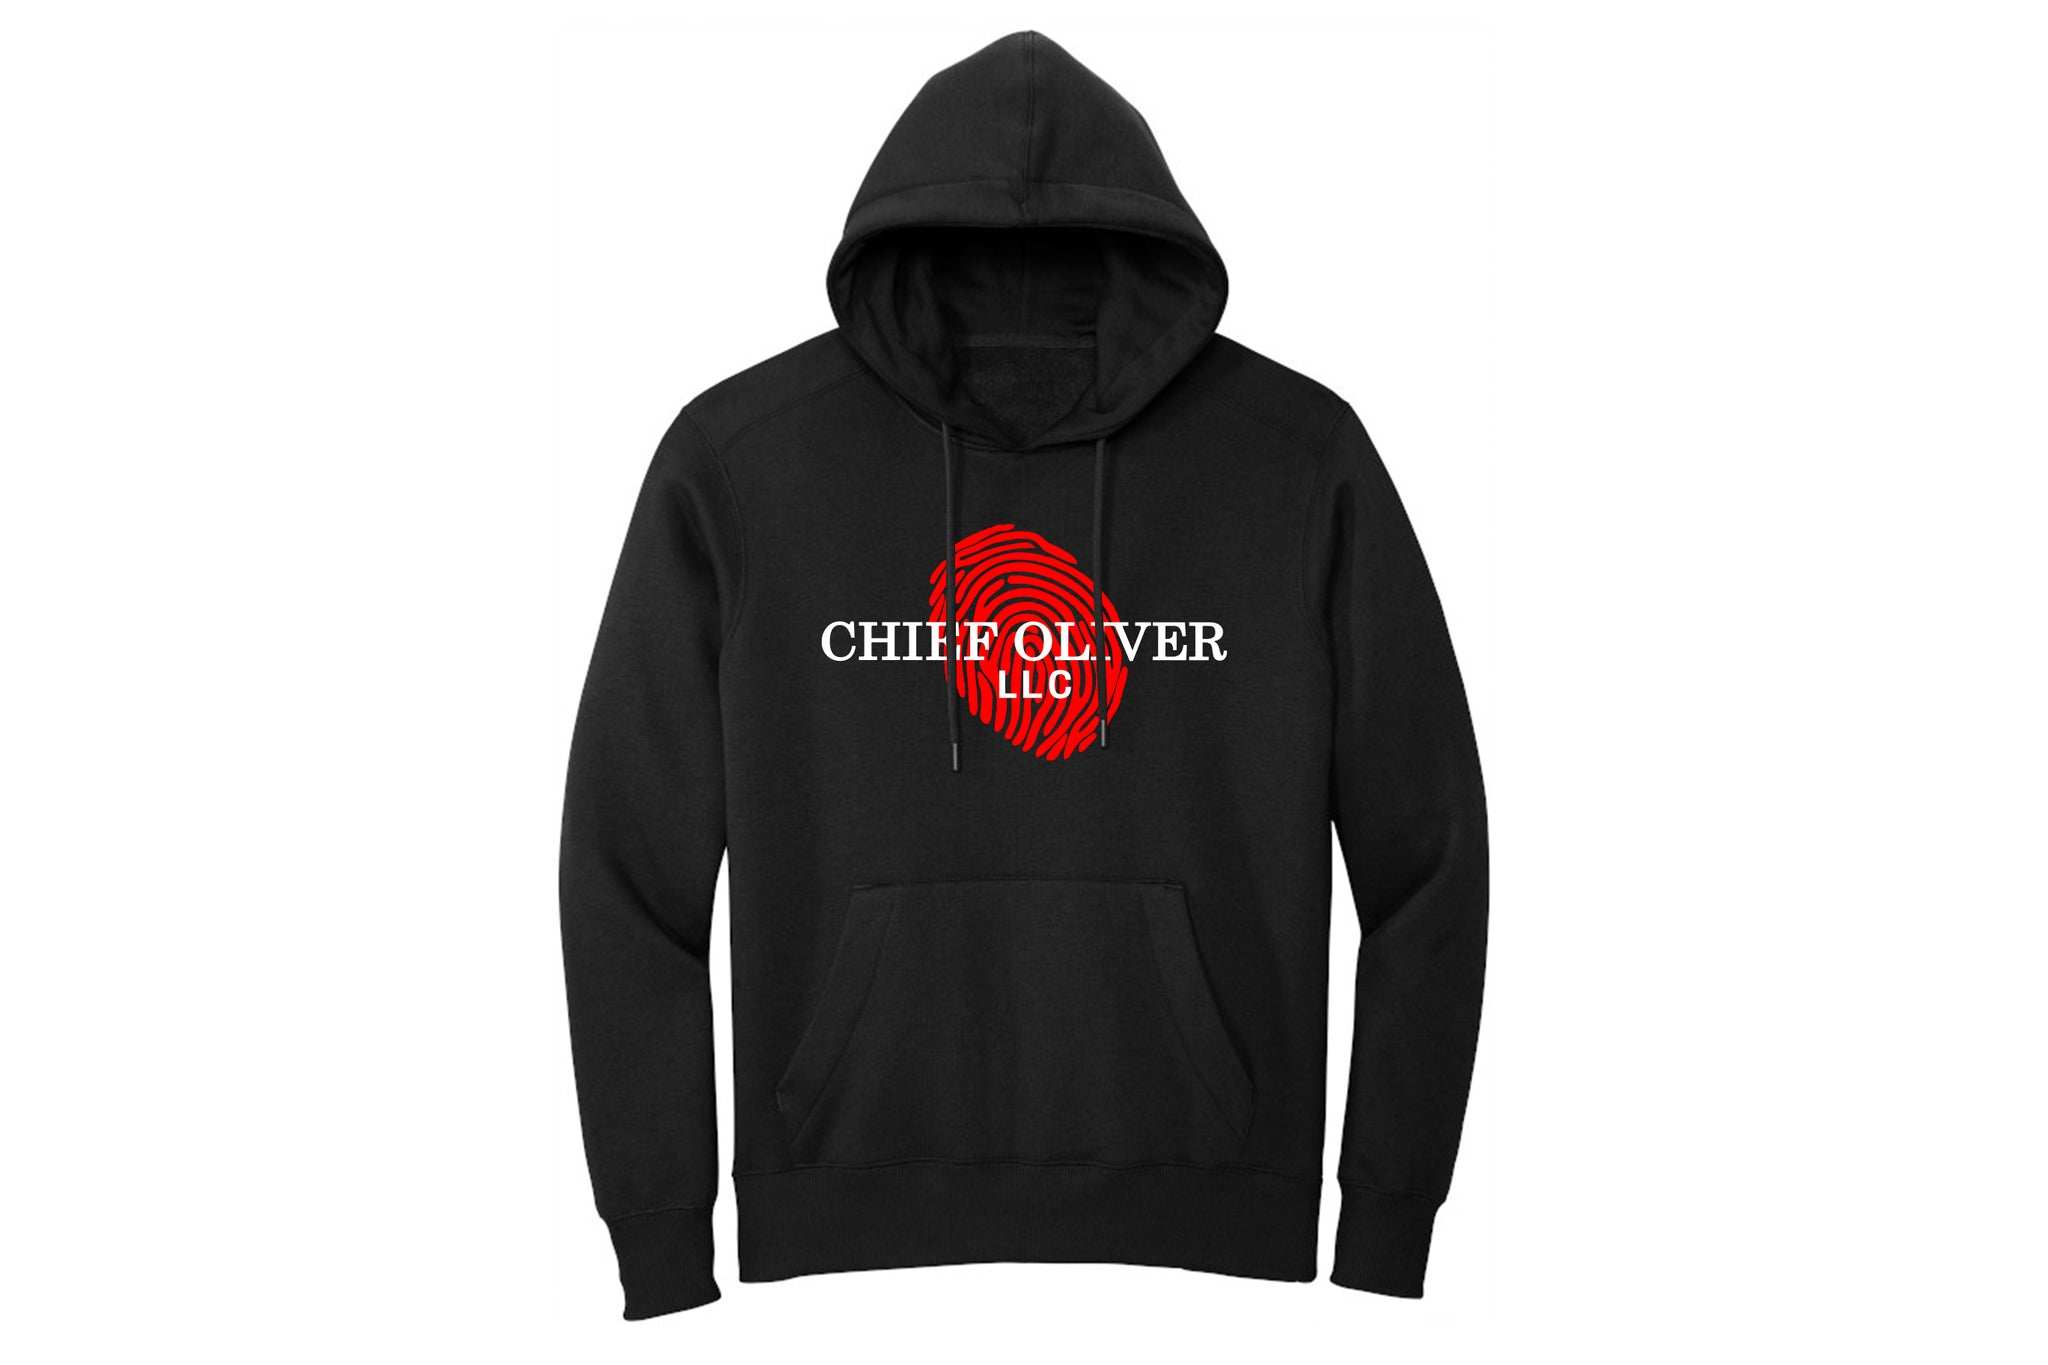 Chief Oliver Men's Fleece Hoodie